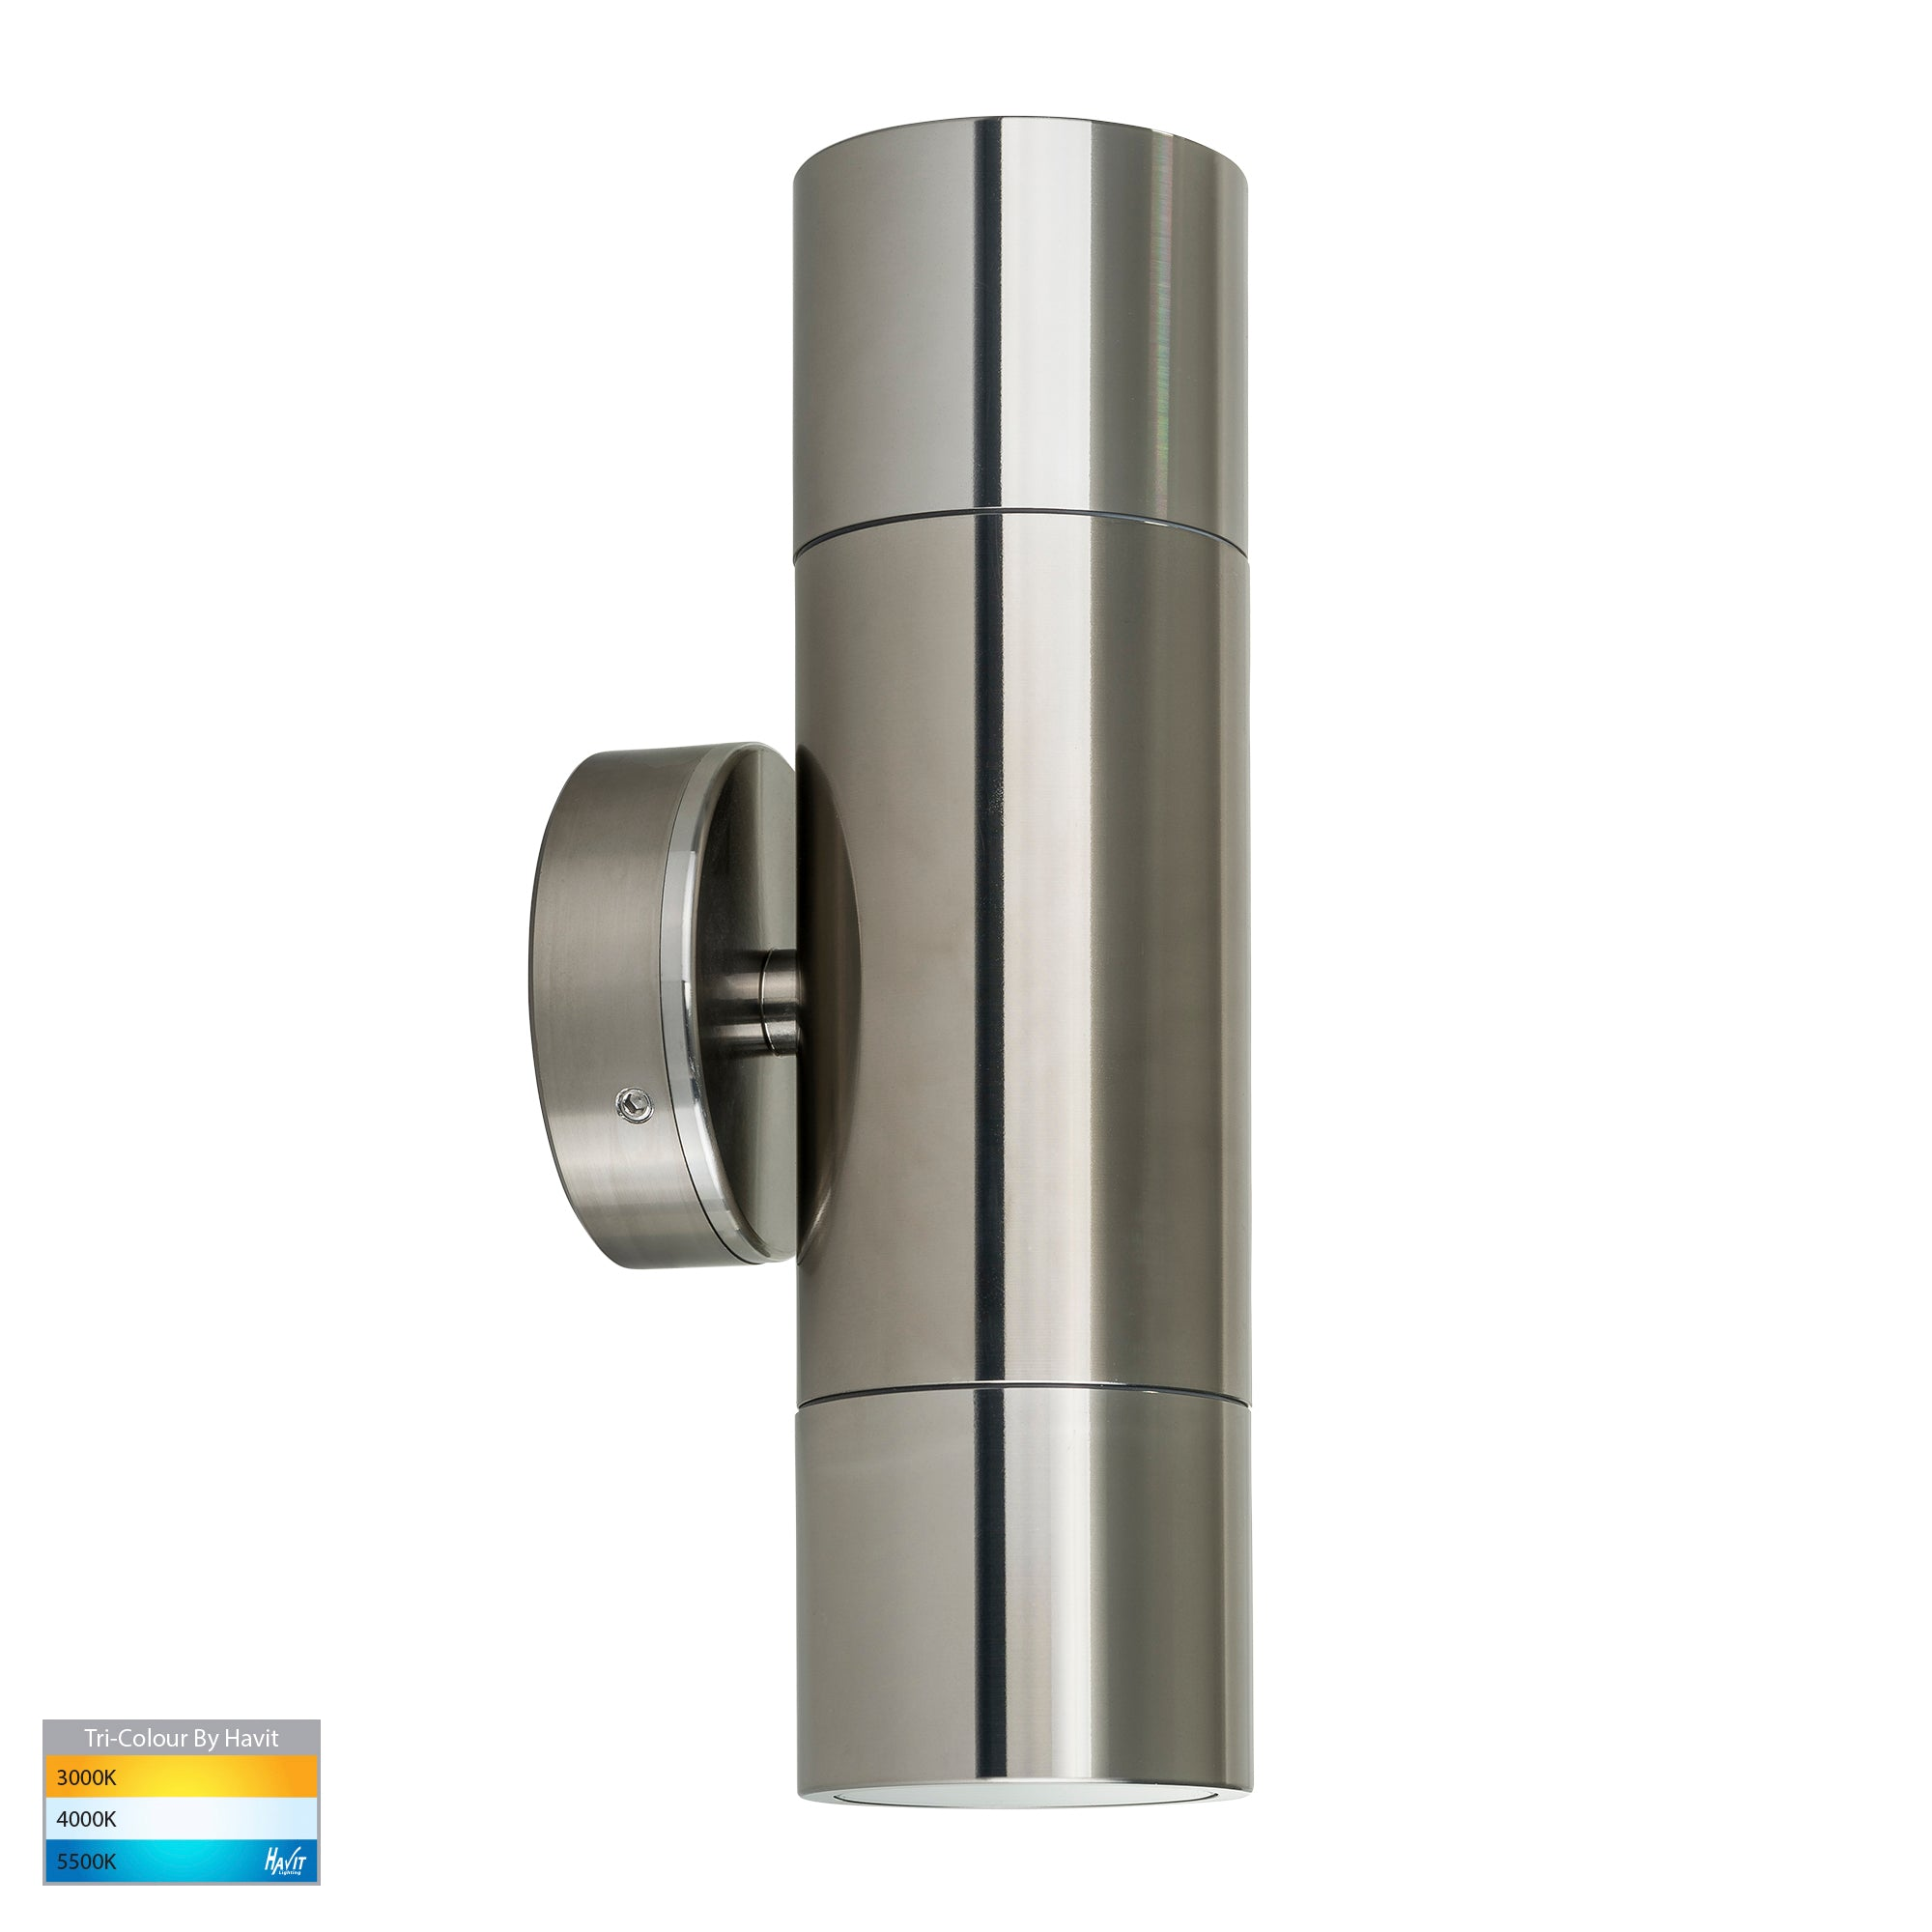 HV1085T-HV1087T - Tivah Titanium Aluminium TRI Colour Up & Down Wall Pillar Lights